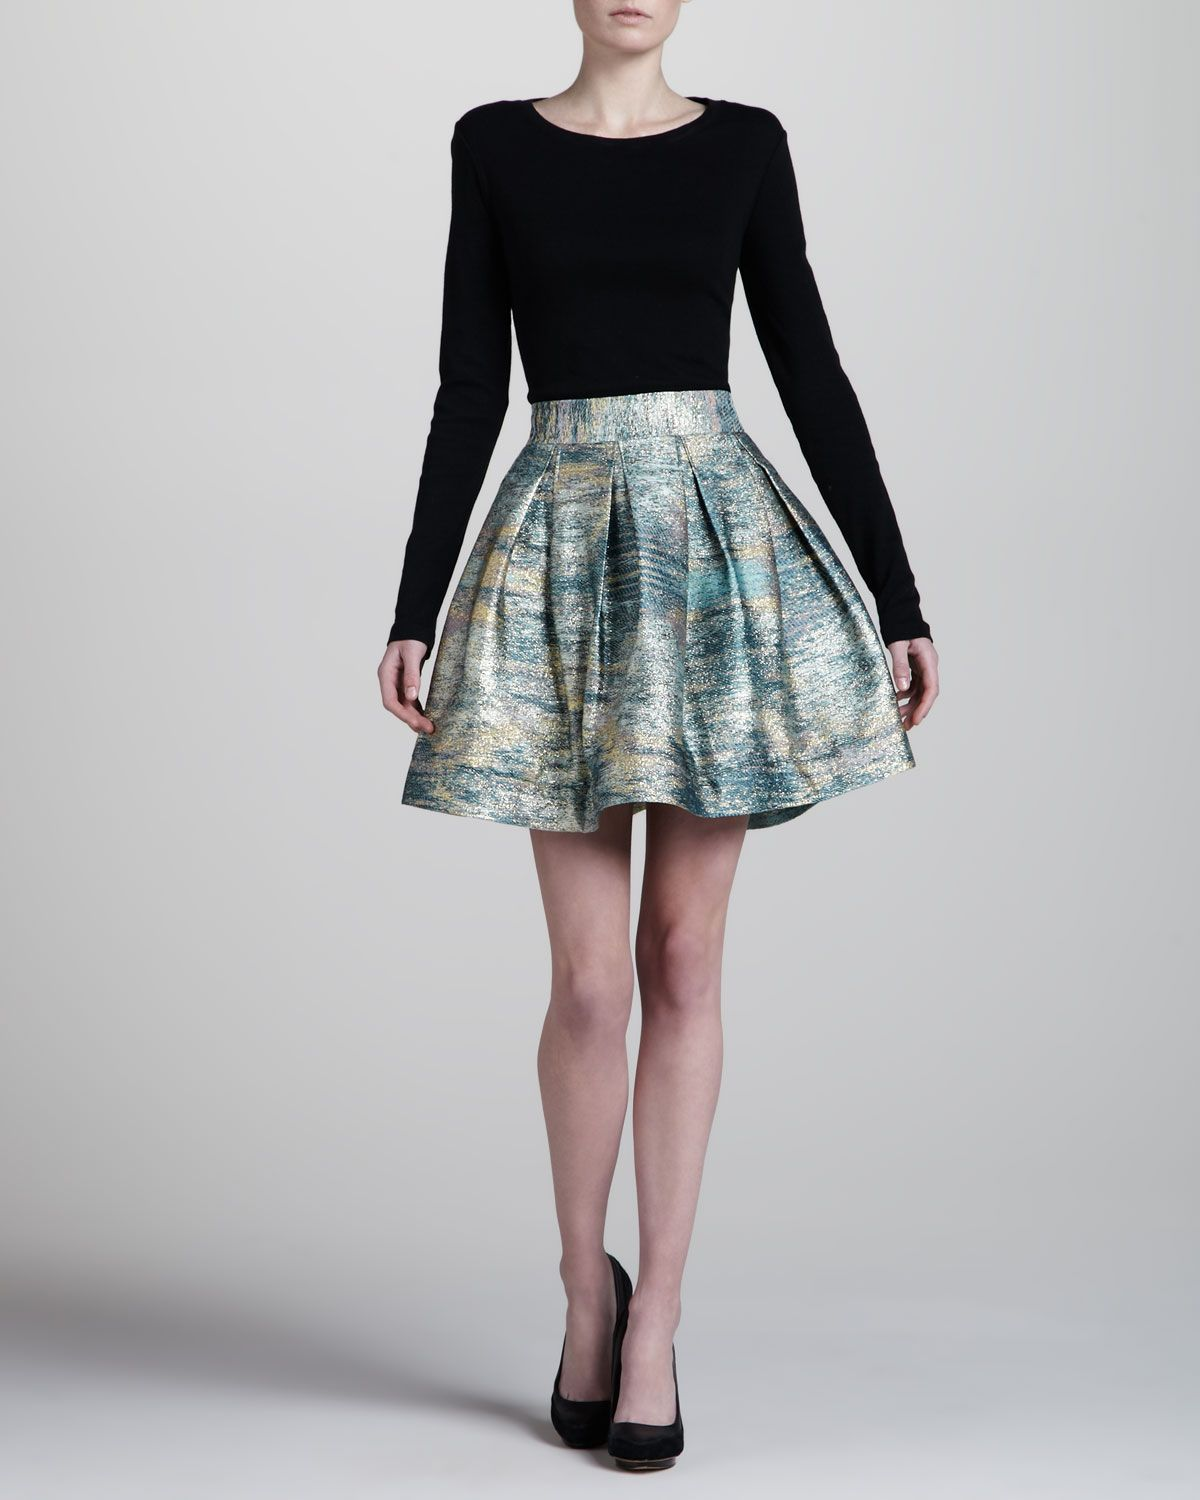 17 Best images about Fashion Skirts on Pinterest | A line, Mini ...